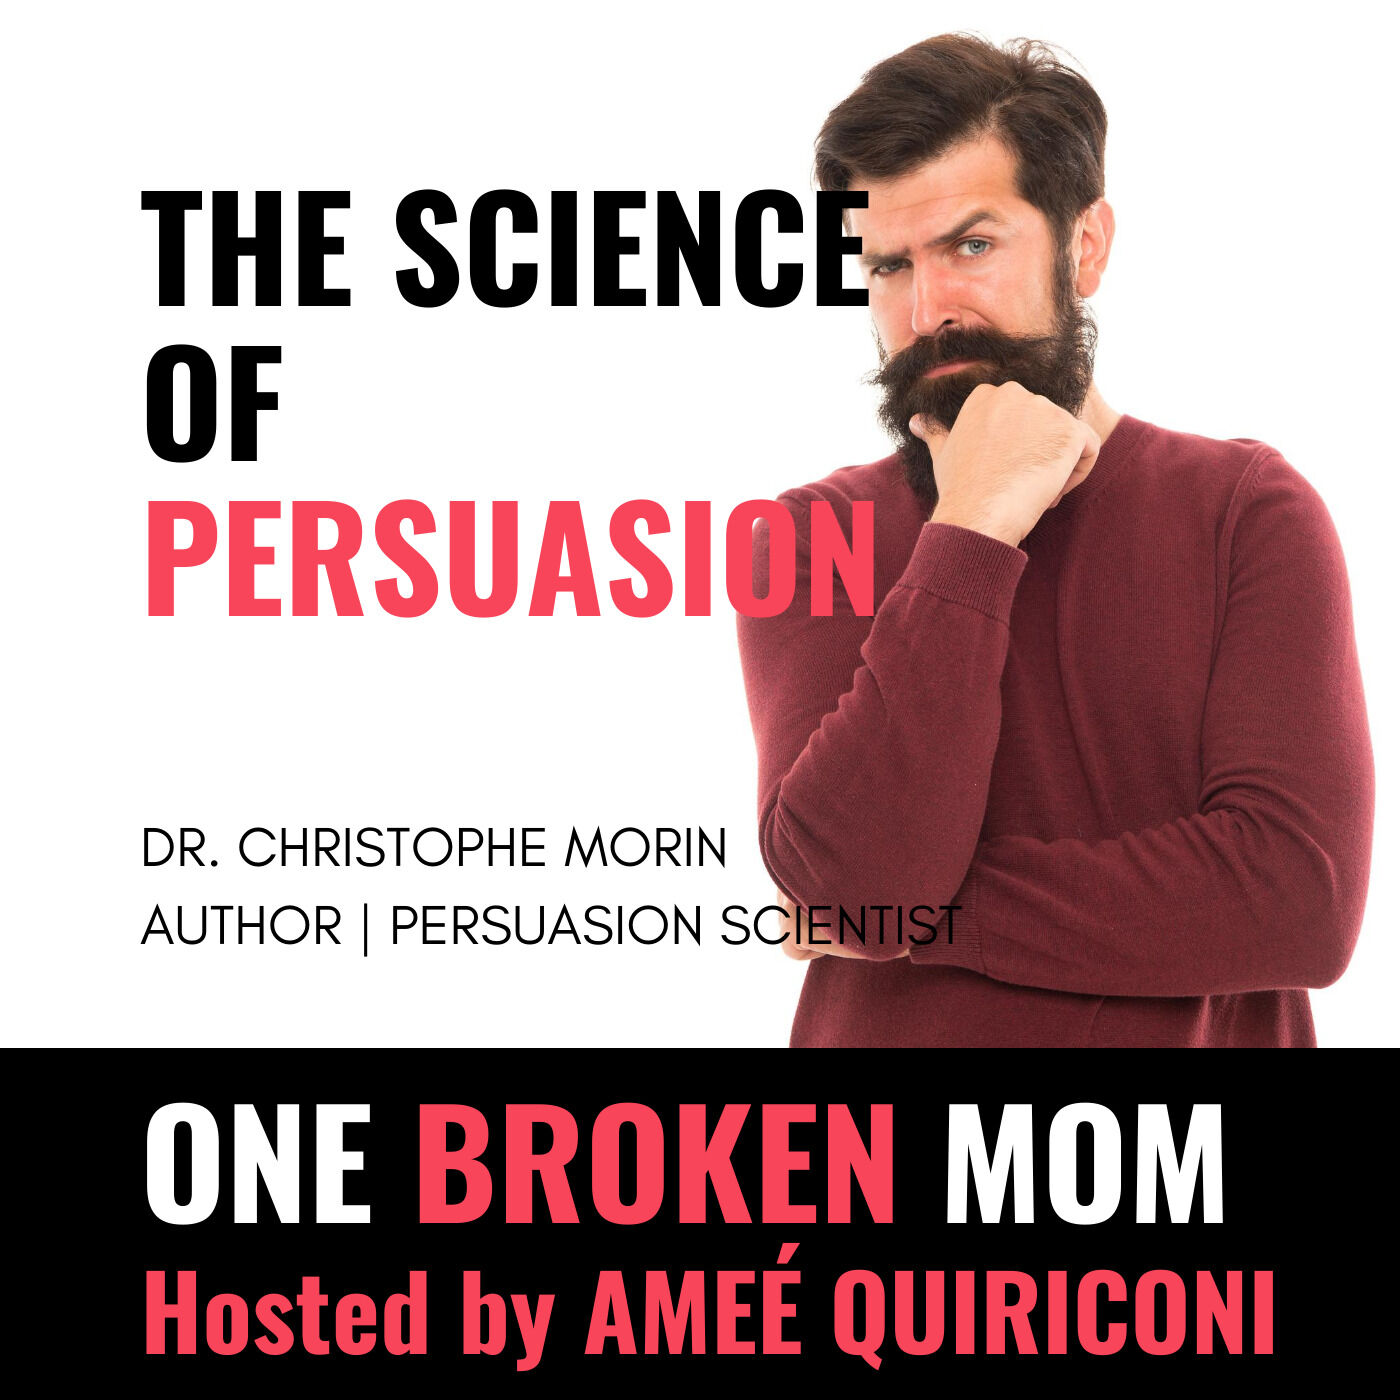 The Science of Persuasion with Dr. Christophe Morin